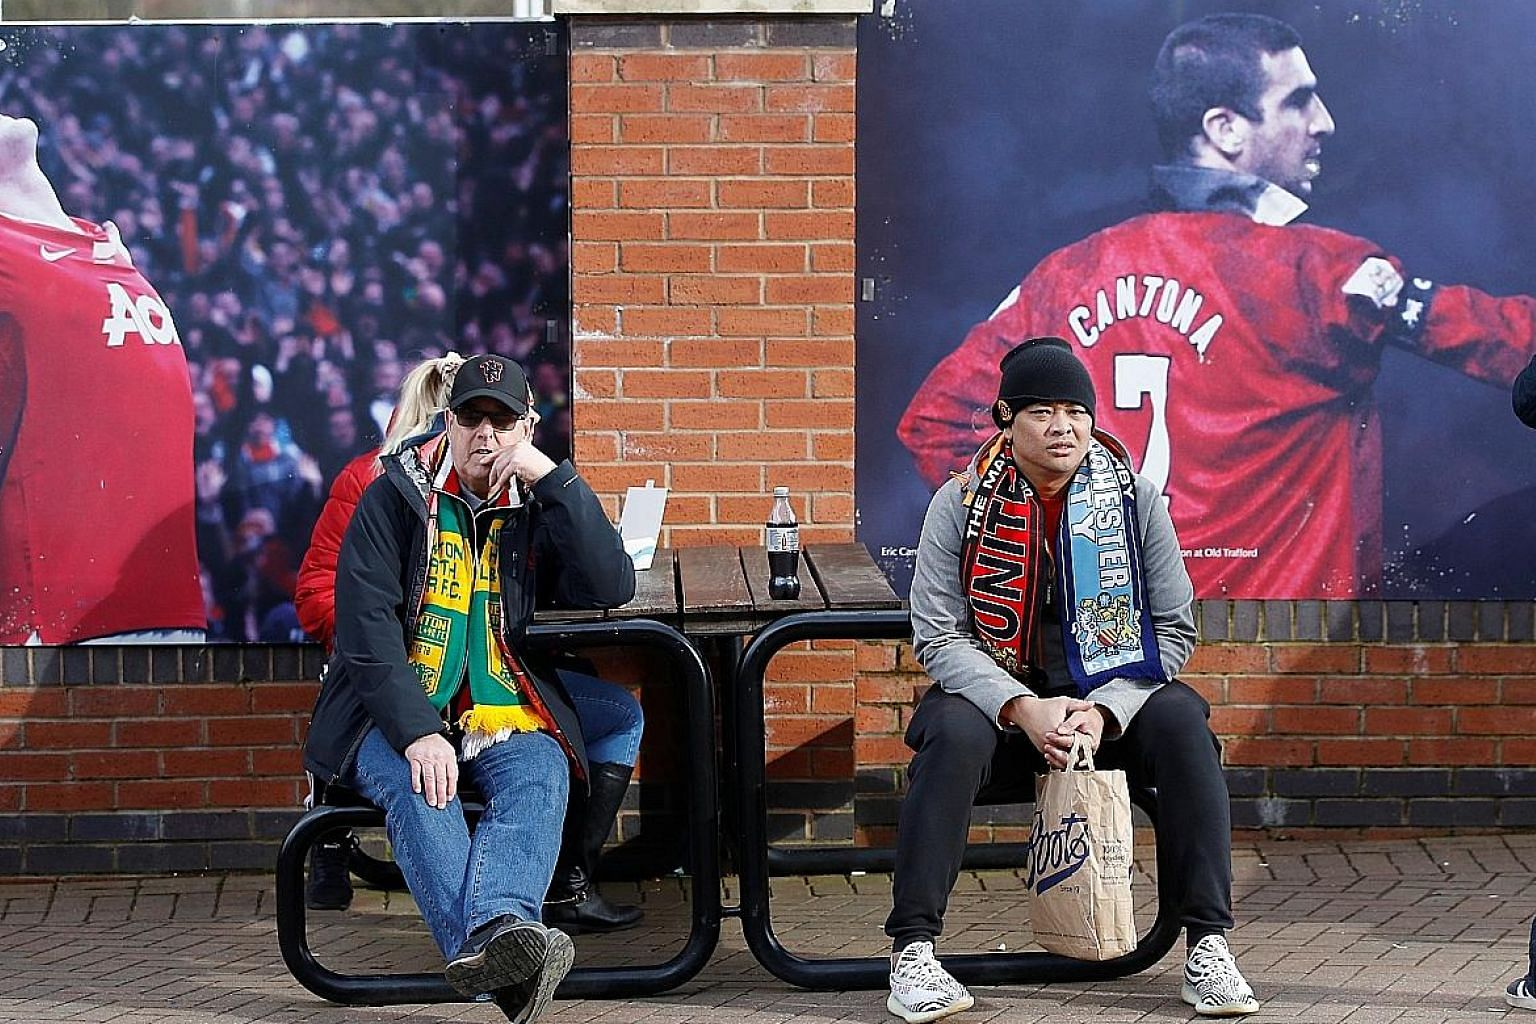 Fans outside Old Trafford before the Manchester United v Manchester City match on March 8. A restarted season behind closed doors will come at a cost to clubs. PHOTO: REUTERS